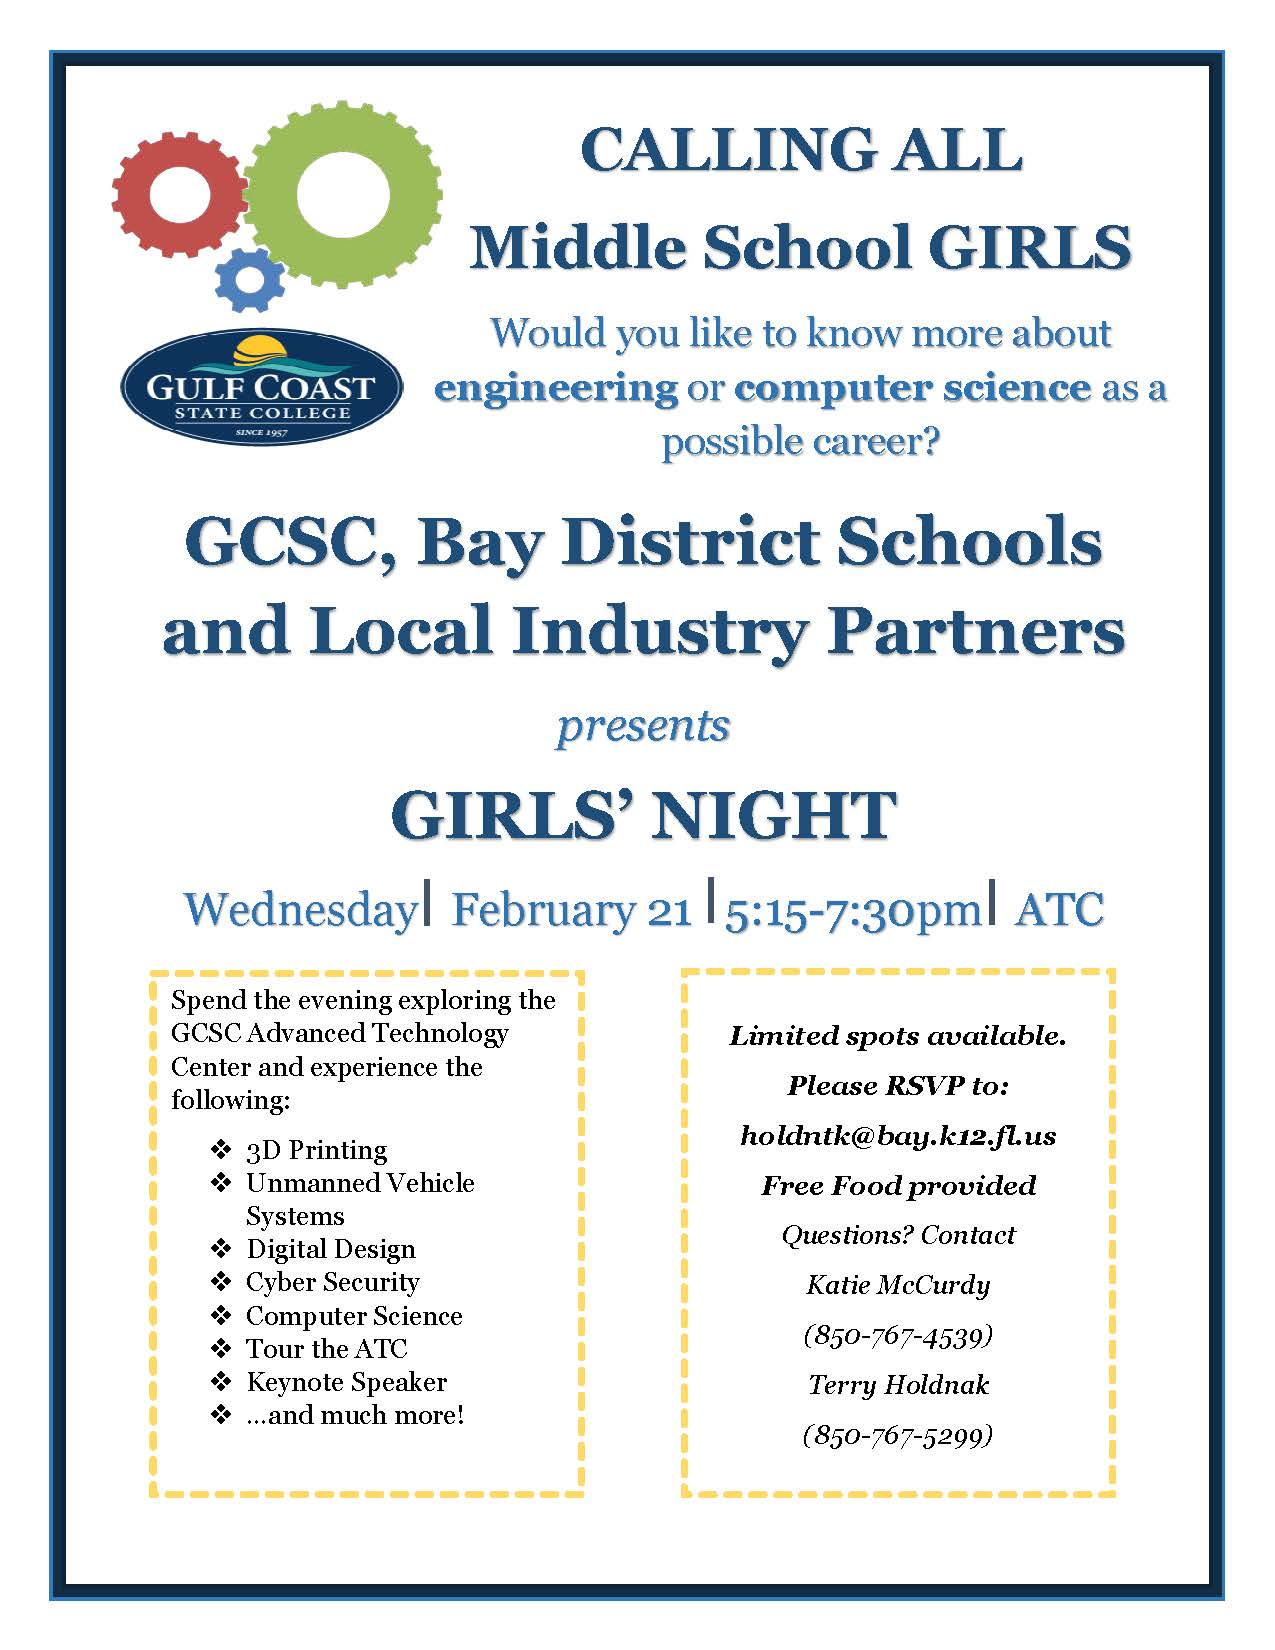 Girls' Night to Promote STEM Careers